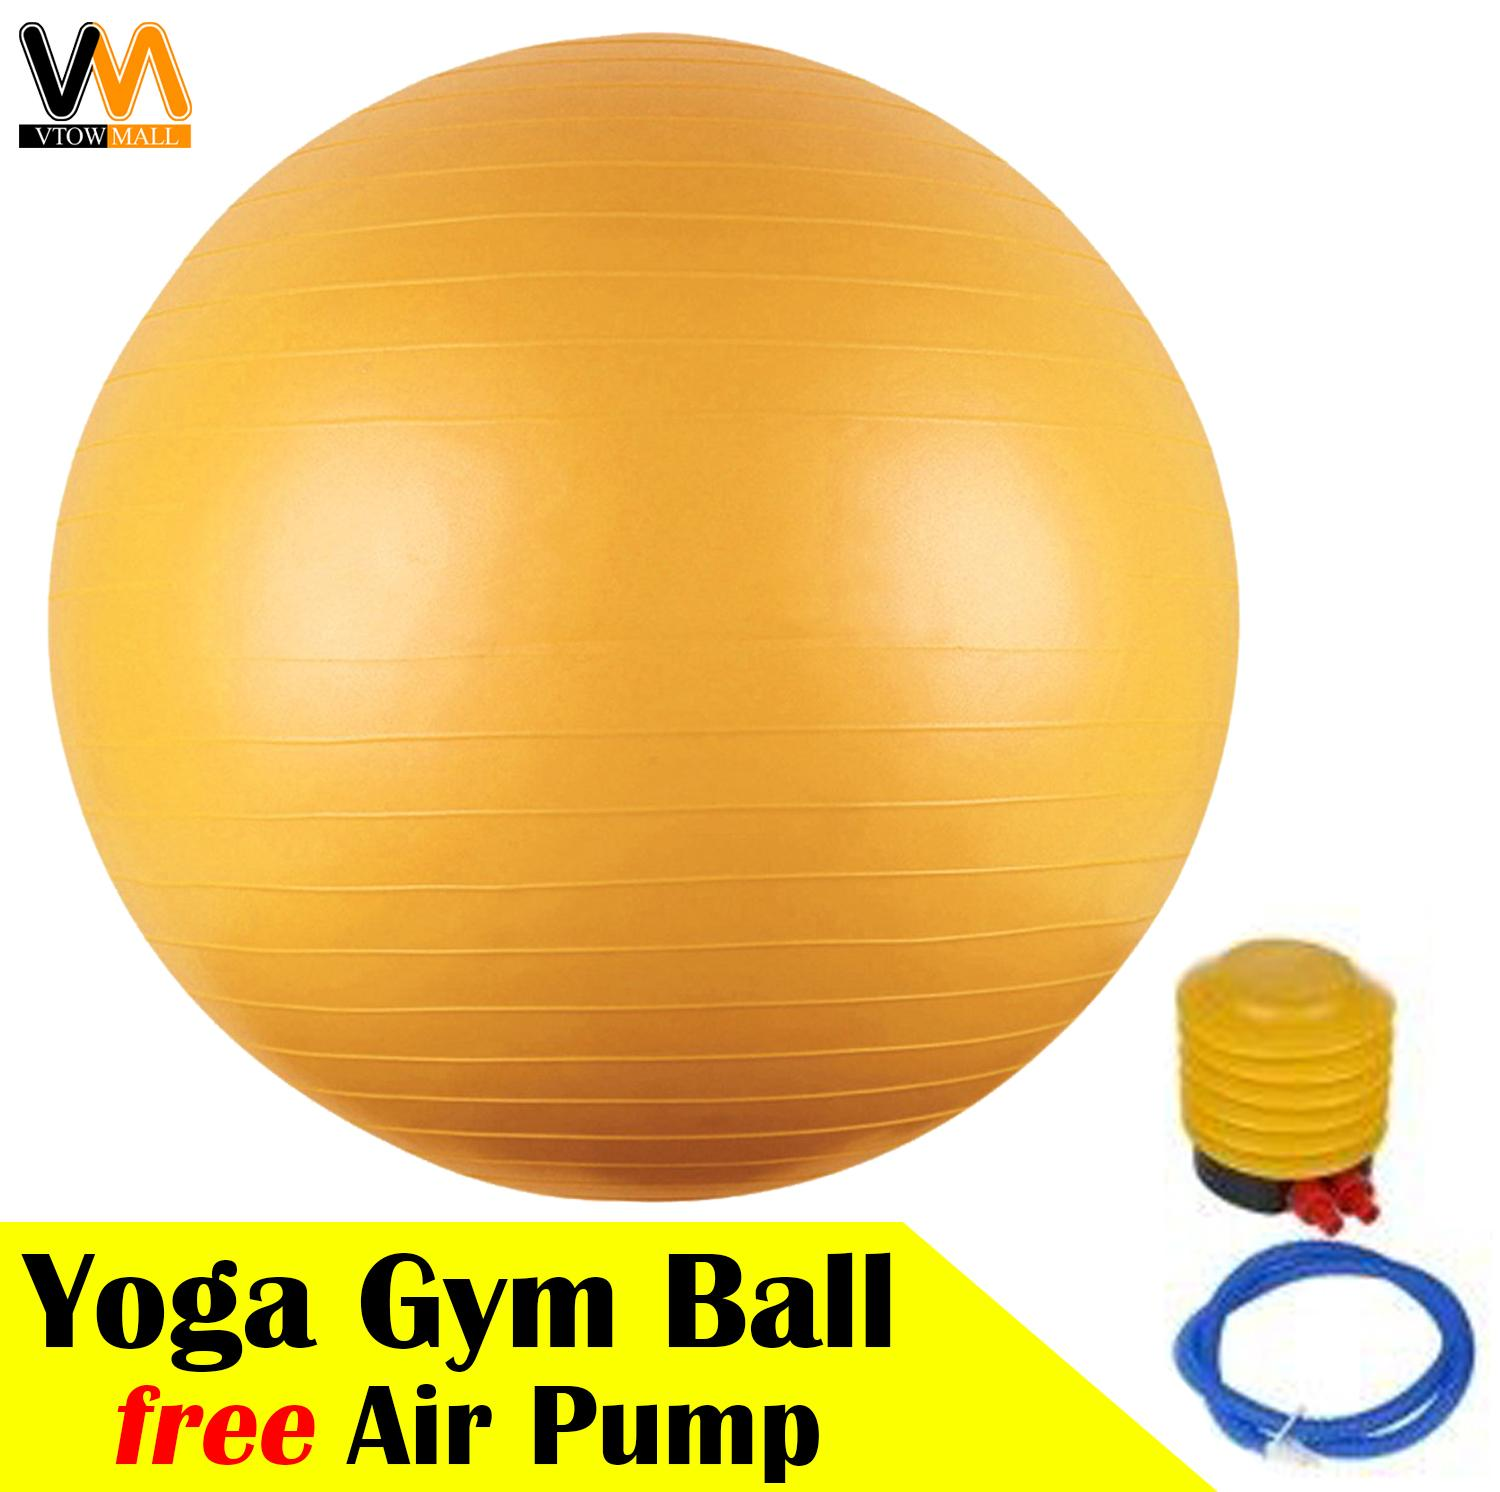 Gymnastic Exercise Ball Yoga Ball By Vtow Cp Gadget.